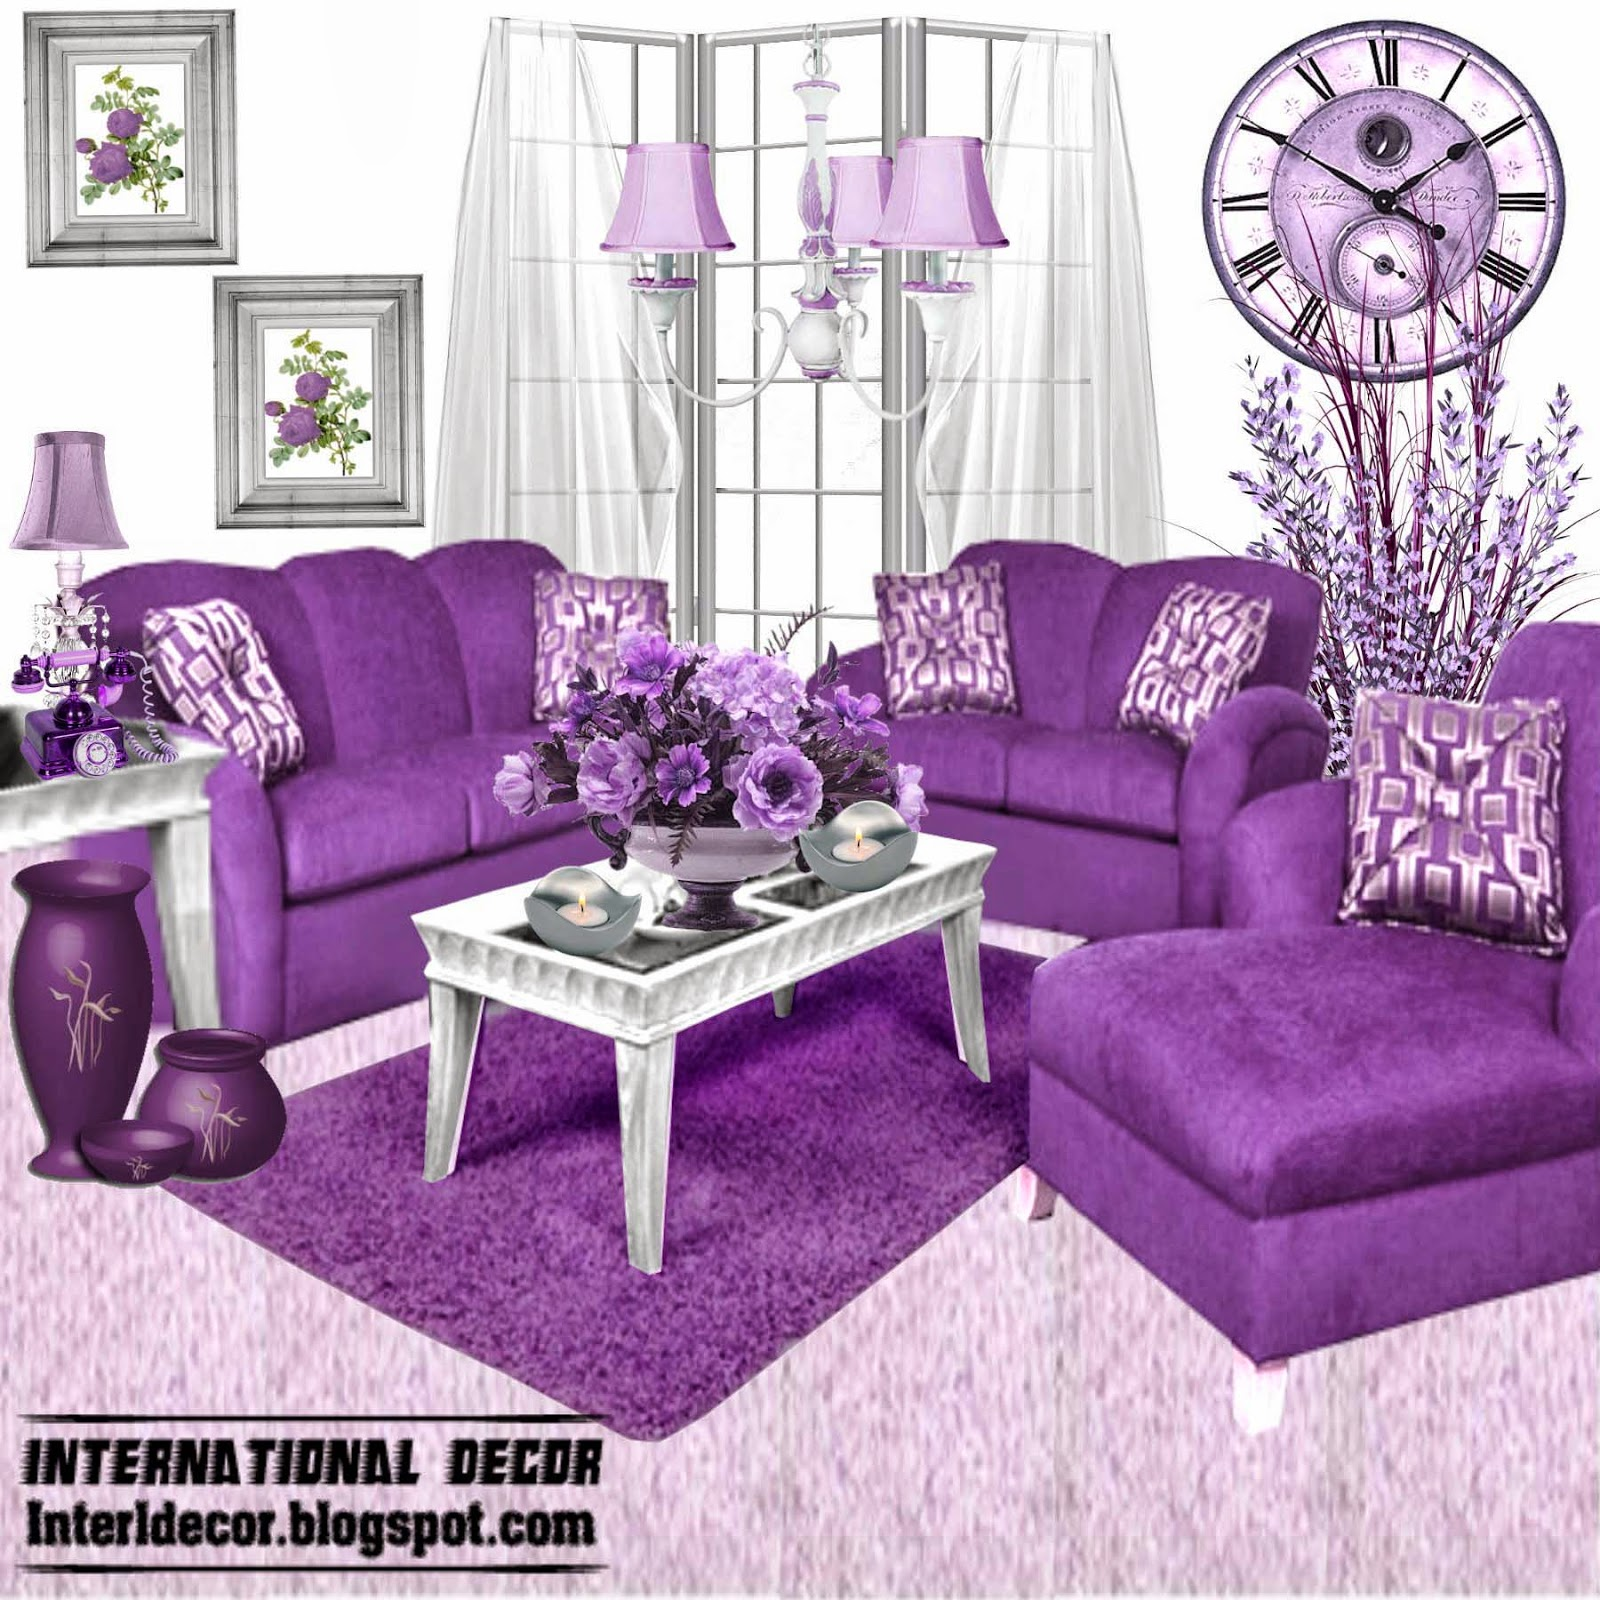 Luxury purple furniture sets sofas chairs for living room interior designs - Living spaces living room sets ...